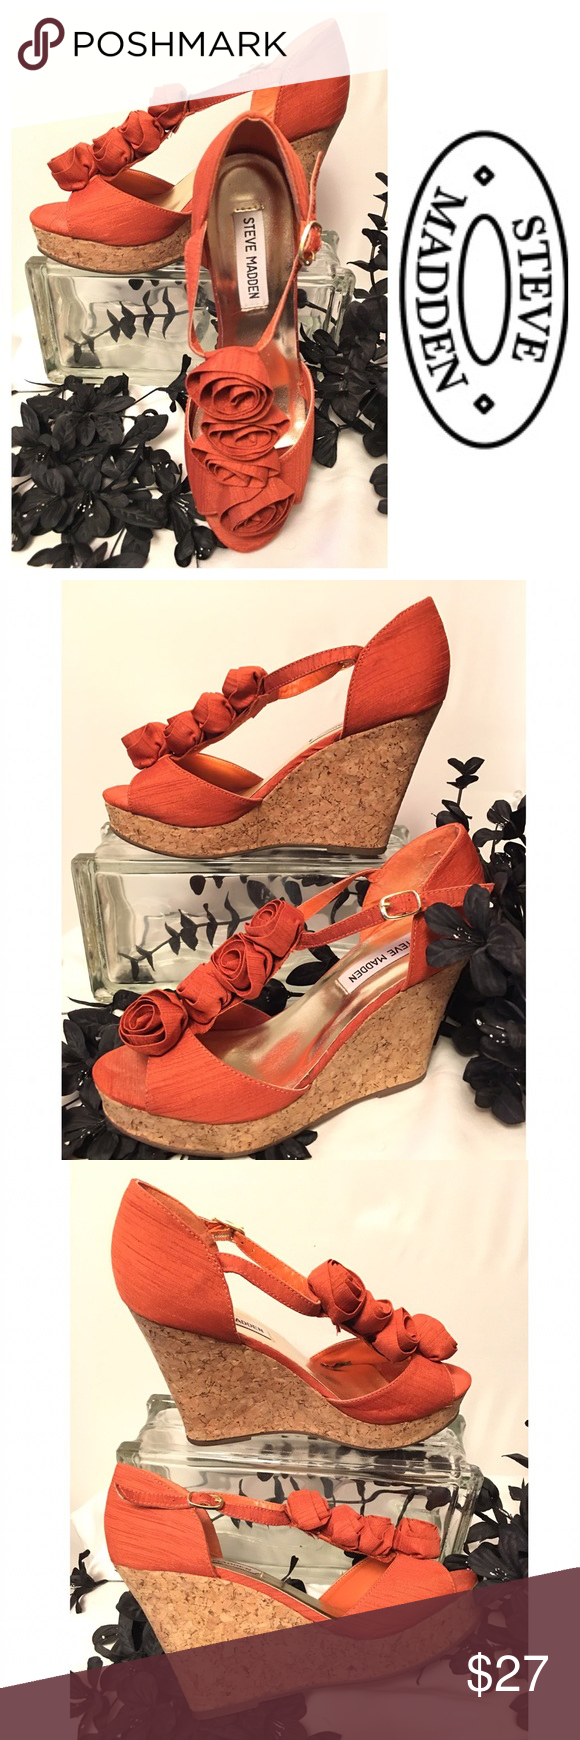 "Steve Madden Wedge Sandals This is an awesome pair of shimmery orange cloth, t-strap Steve Madden cork wedge sandals with rosettes.  4"" heel Steve Madden Shoes Wedges"